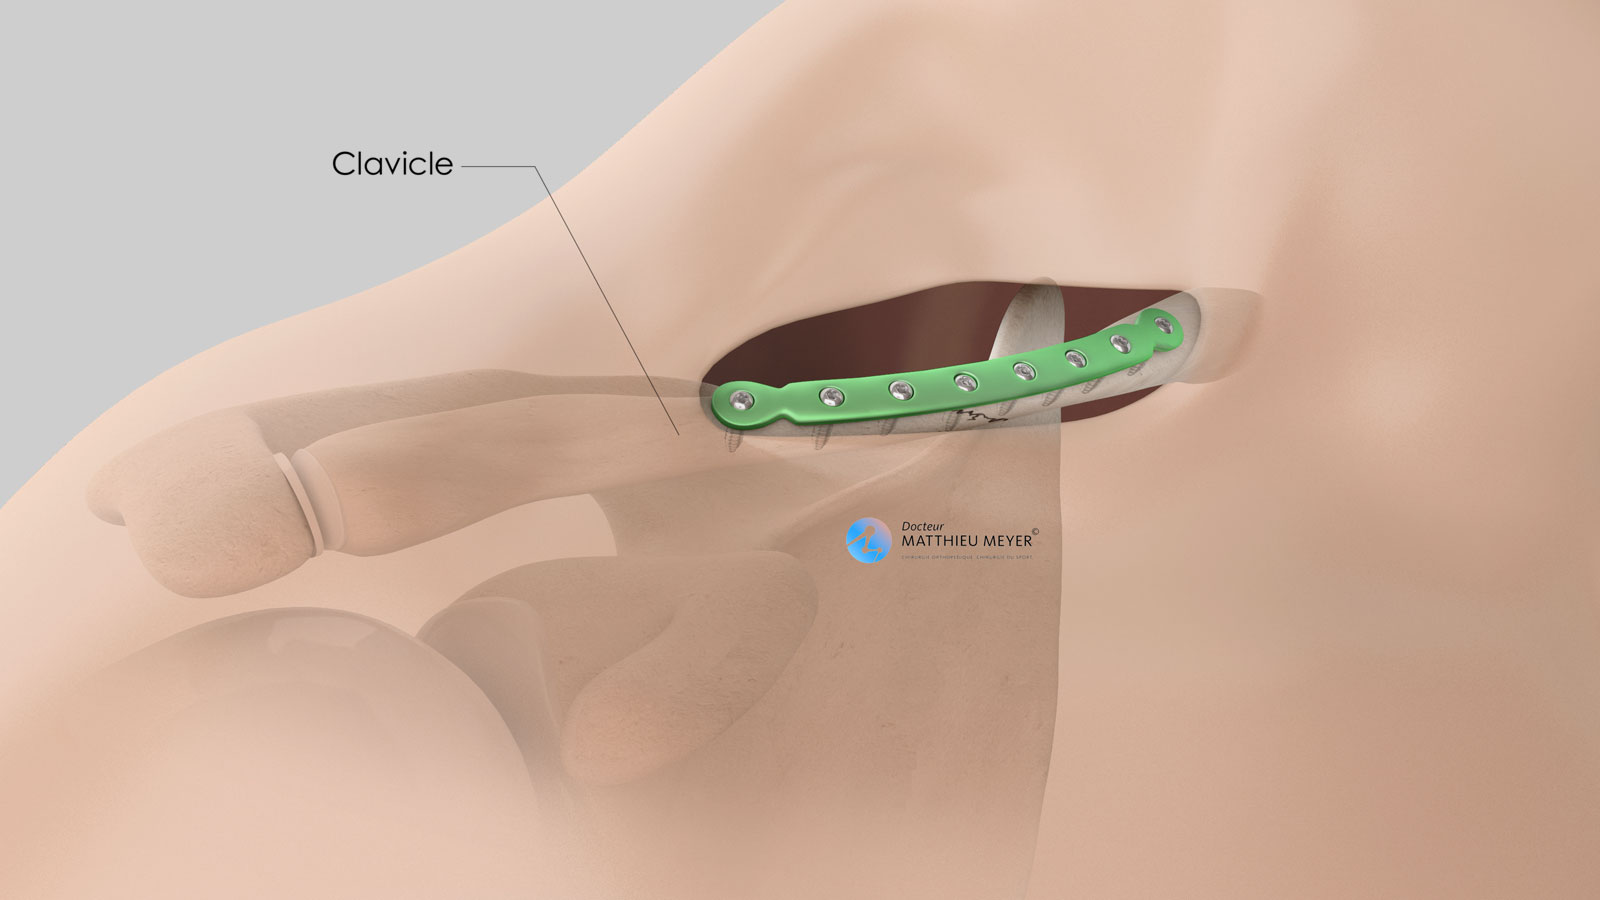 Clavicle osteosynthesis plate fixed with screws